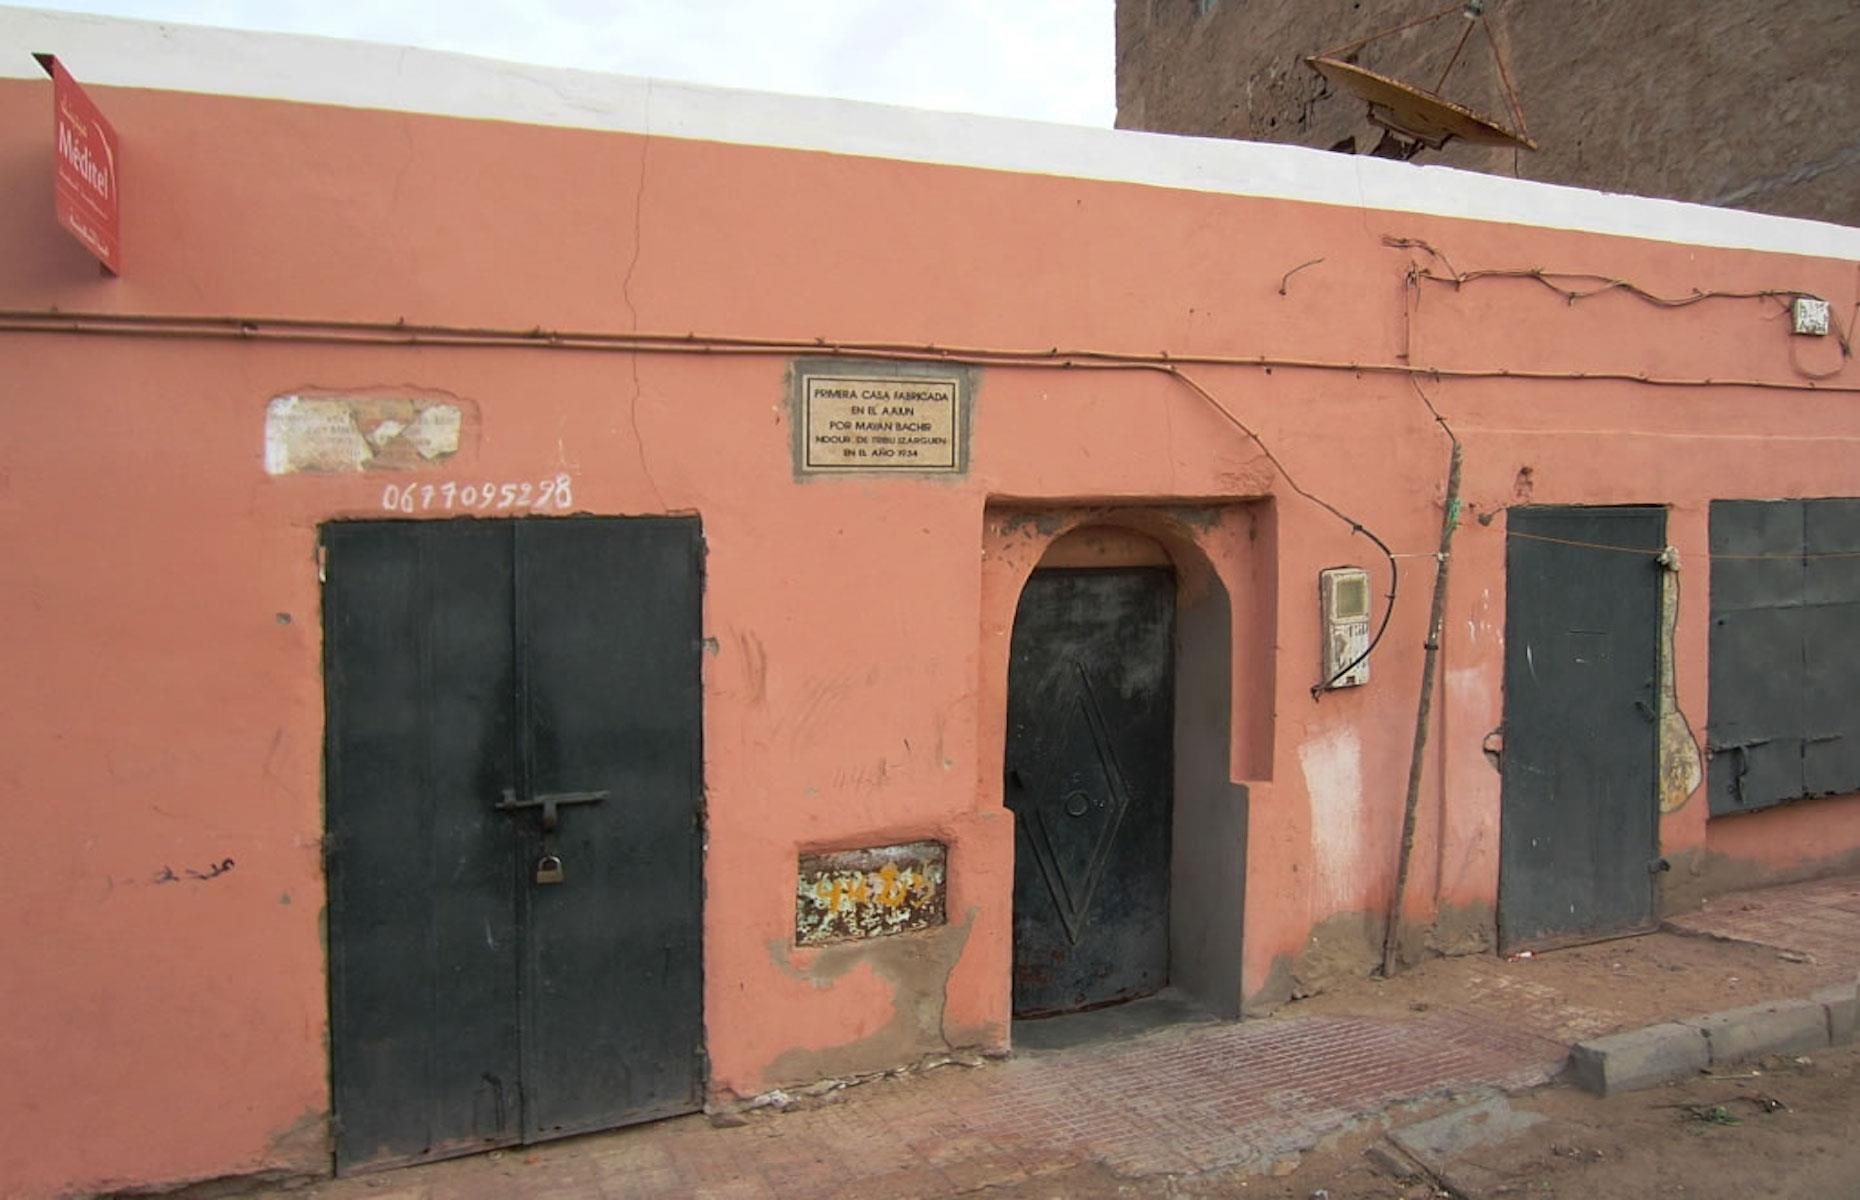 Slide 27 of 51: Almost half of that number live in its largest city Laayoune (about 200,000 inhabitants), which is administered by Morocco and is under the supervision of UN peacekeepers. This house is said to be the oldest, dating back to 1934.